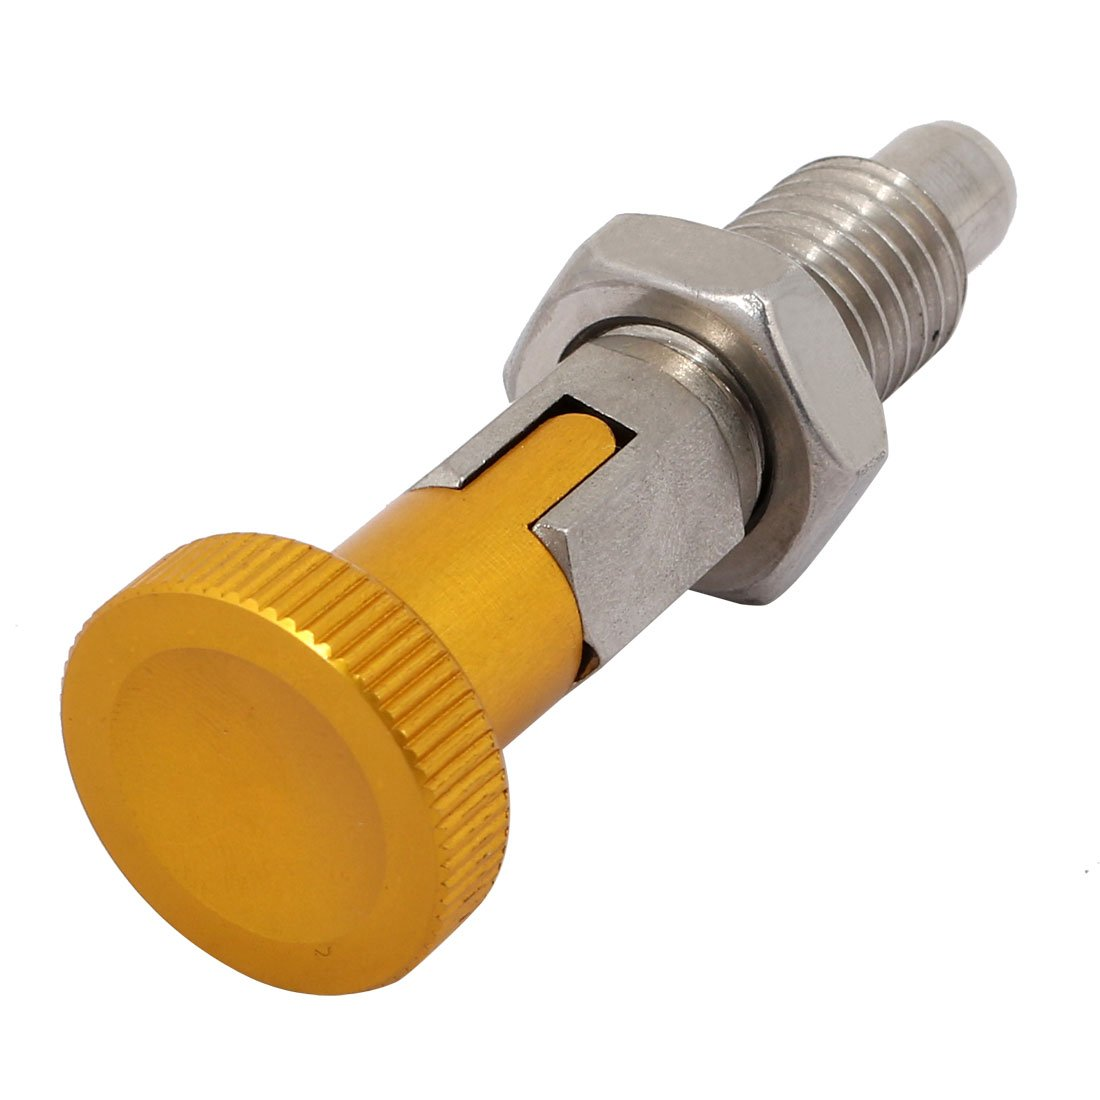 uxcell M12x1.75mm Thread 8mm Pin Dia Stainless Steel Lock-Out Type Indexing Plunger w Locking Nut